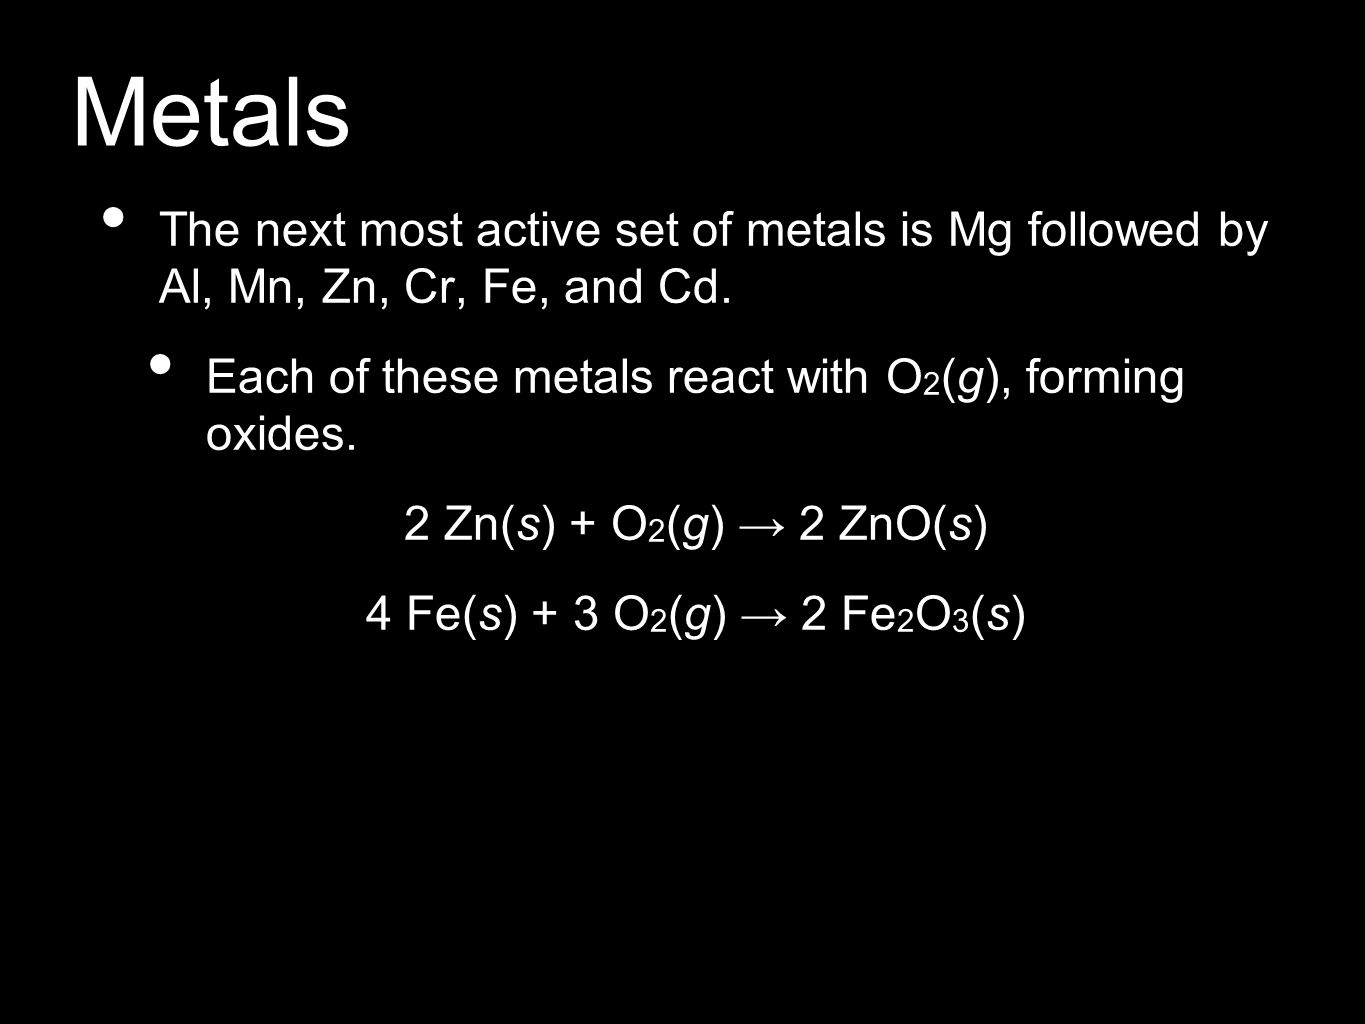 Metals The next most active set of metals is Mg followed by Al, Mn, Zn, Cr, Fe, and Cd.